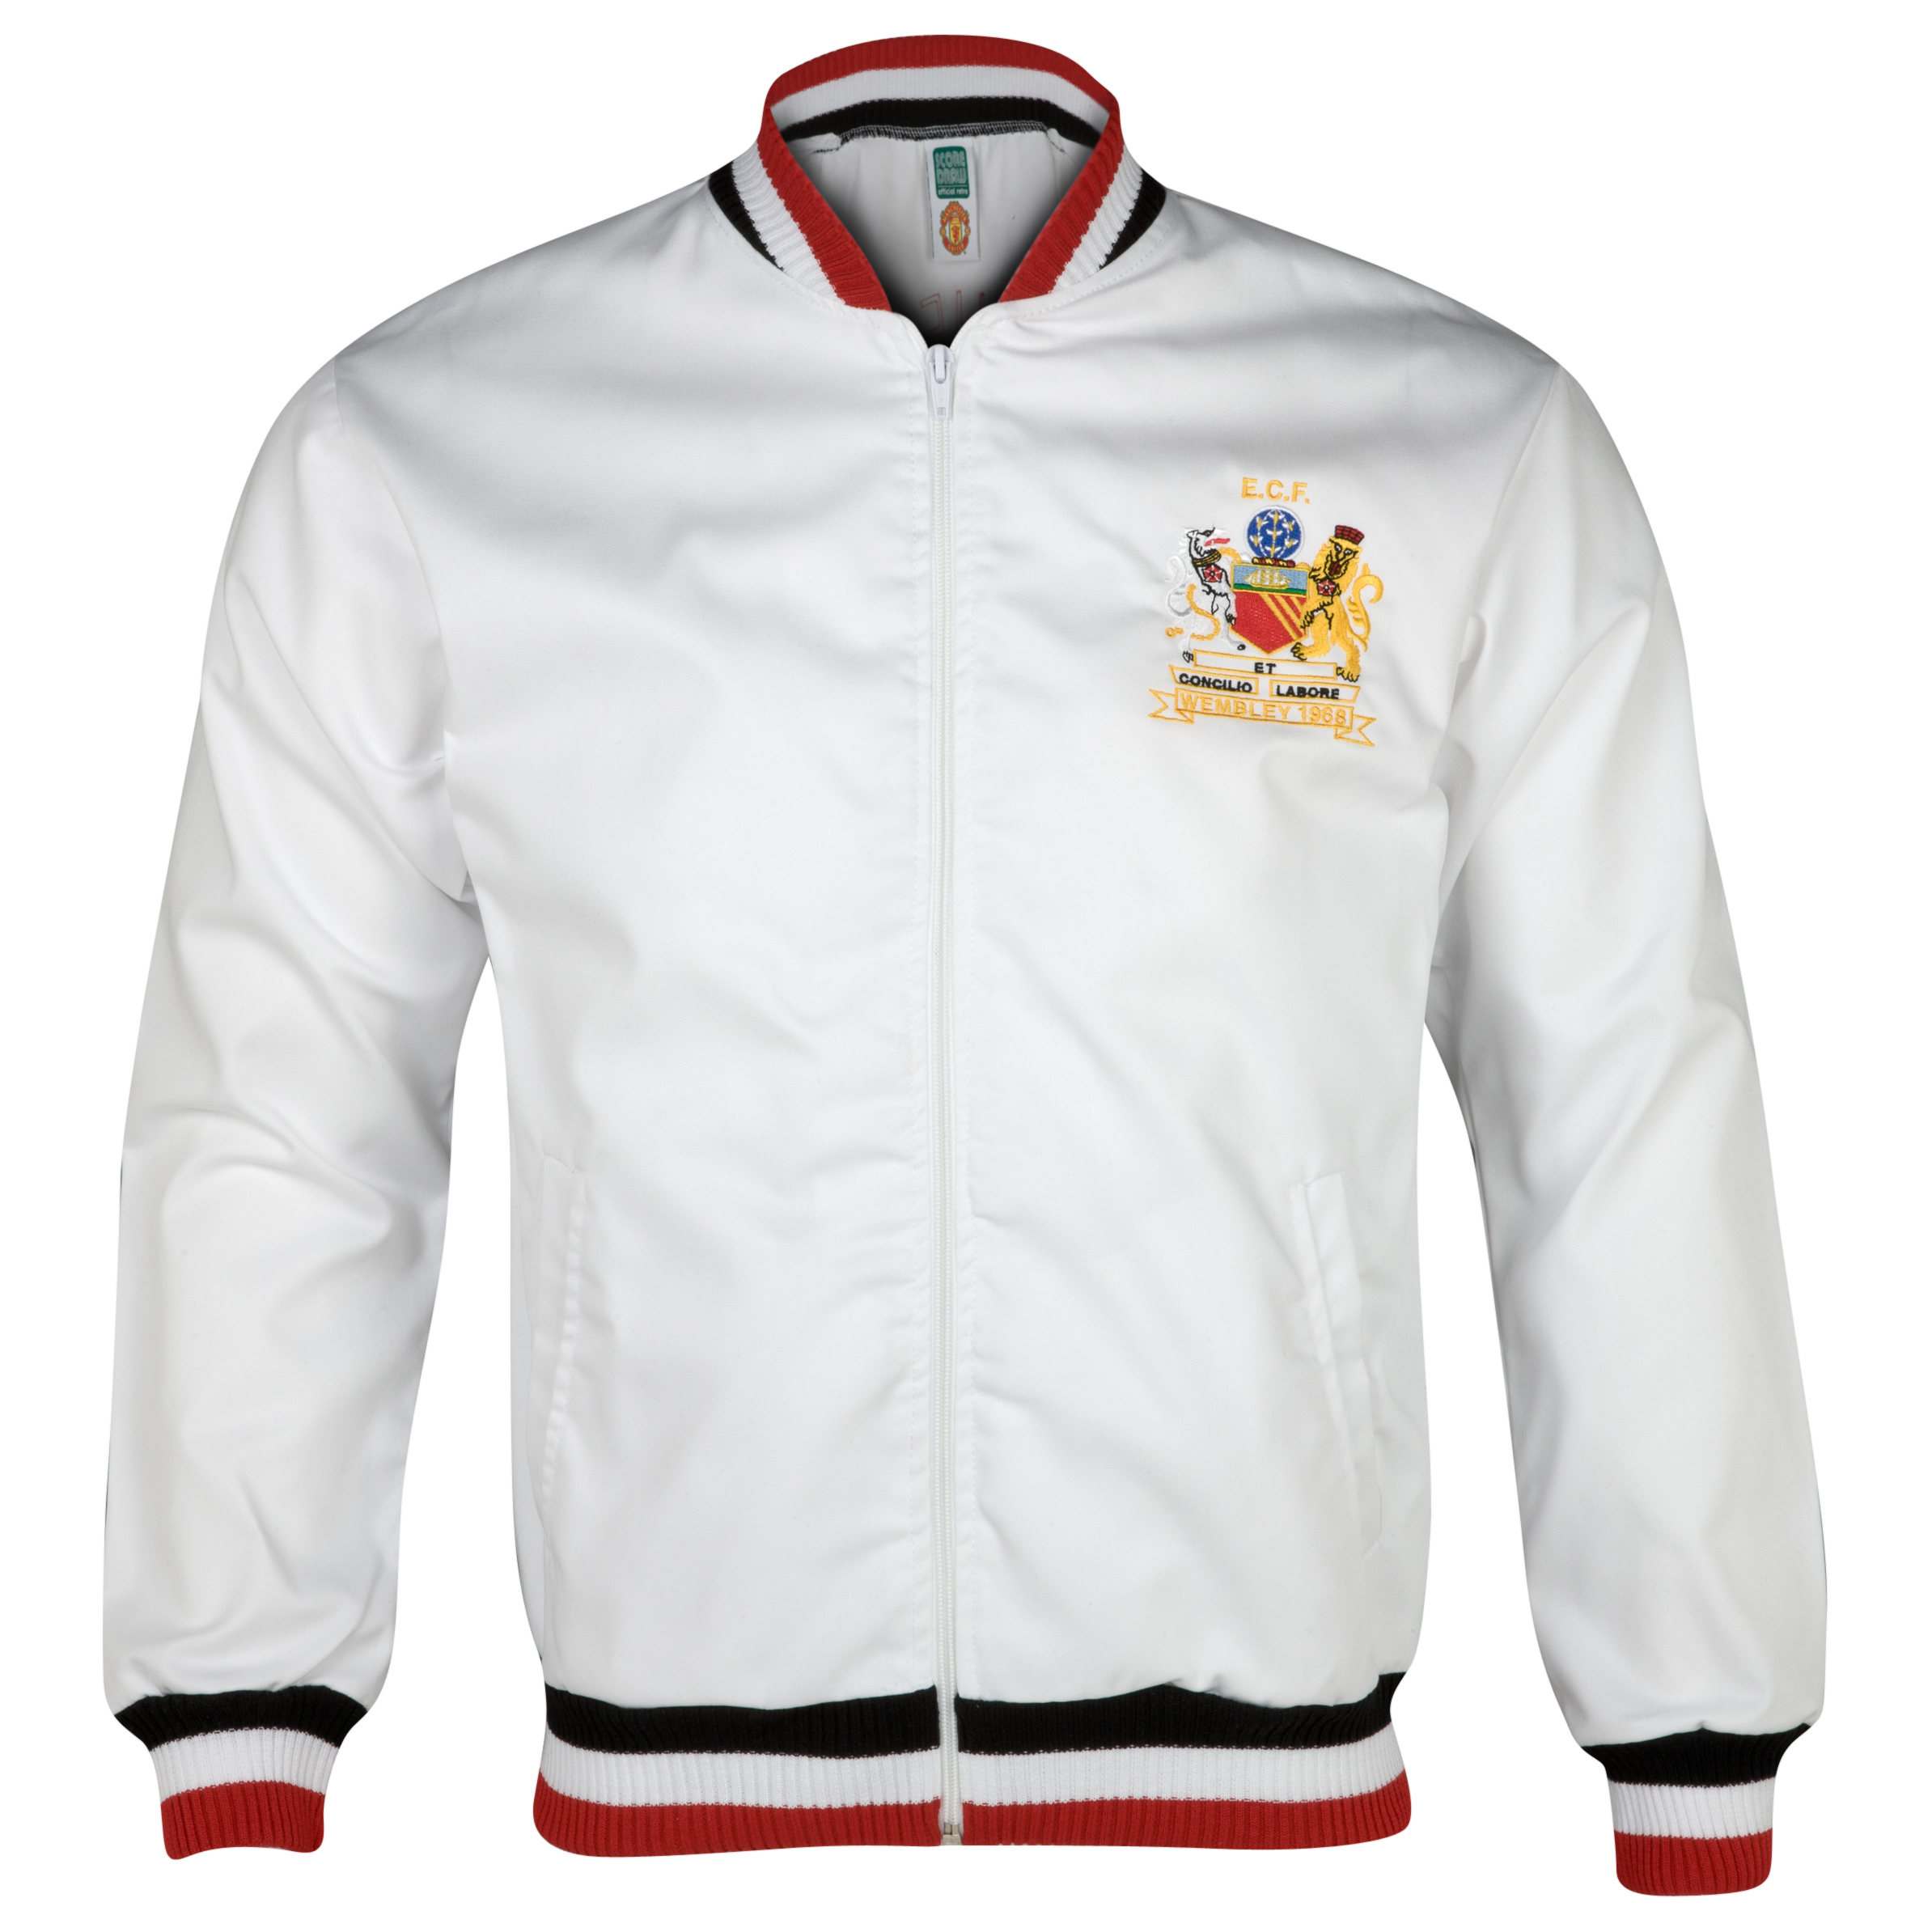 Manchester United 1968 European Cup Final Track Jacket - White